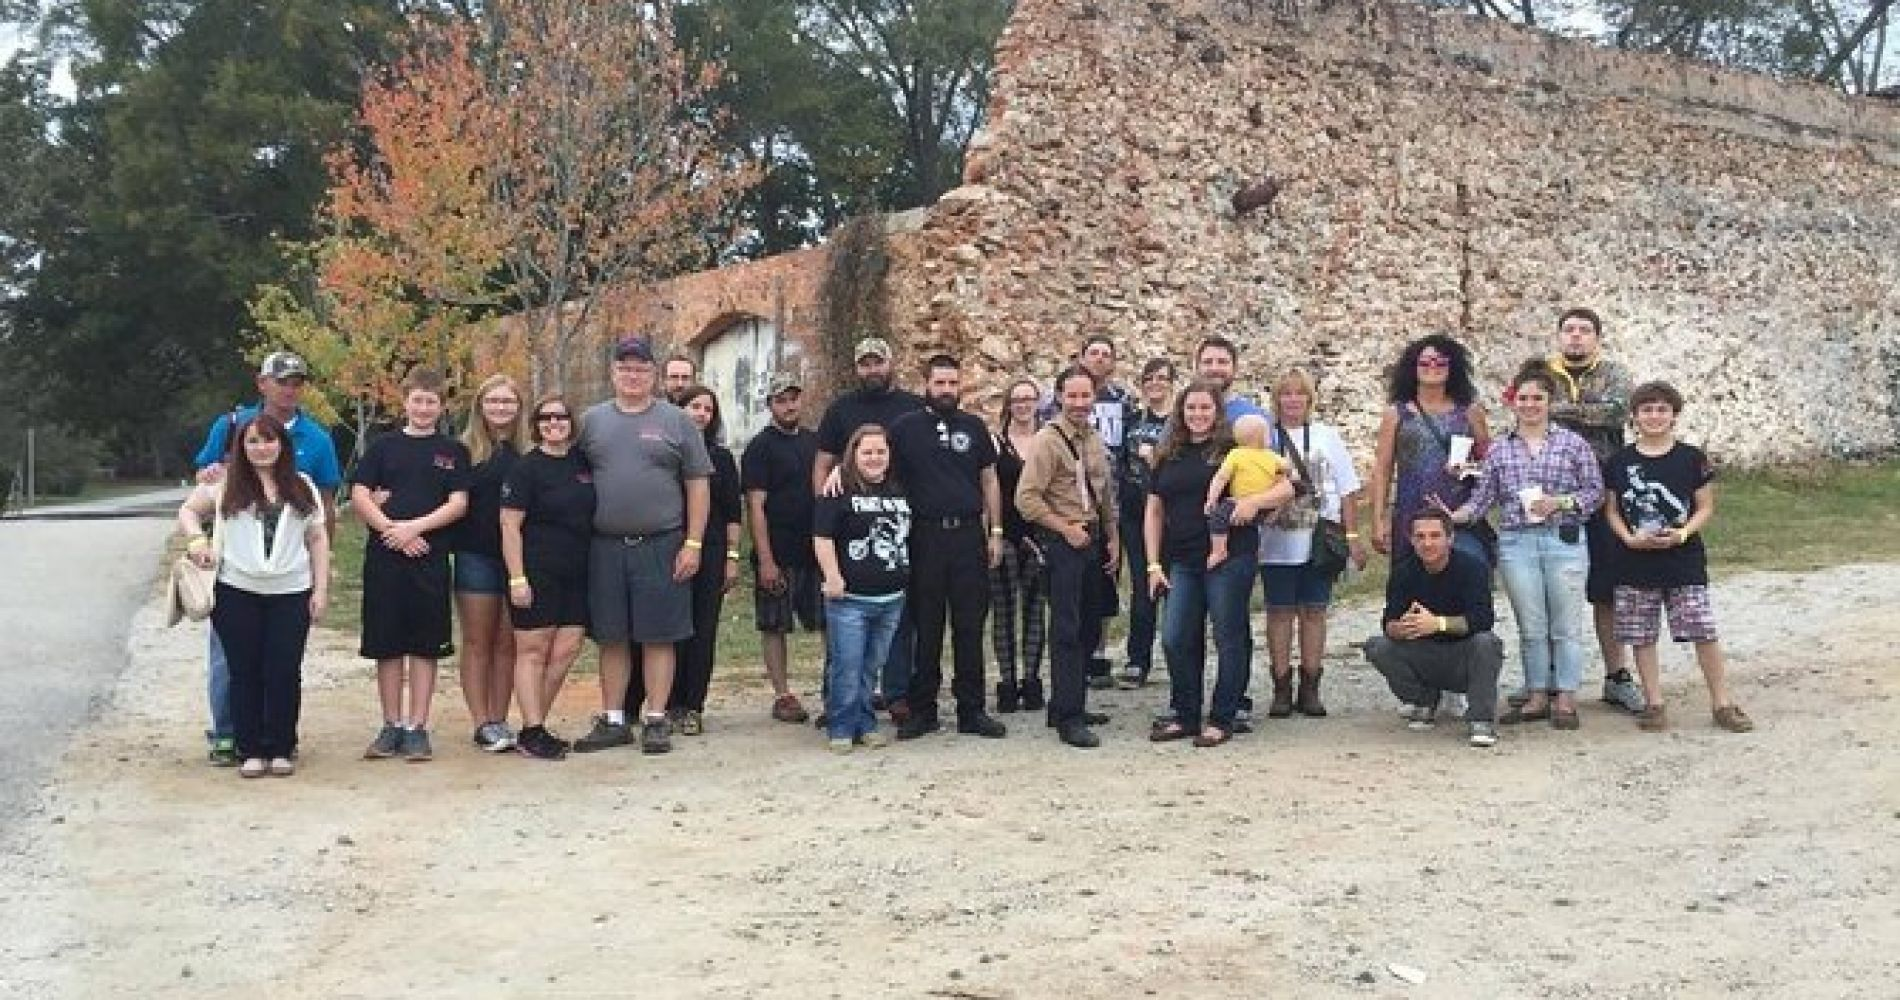 The Walking Dead TV Show Filming Locations Walking Tour